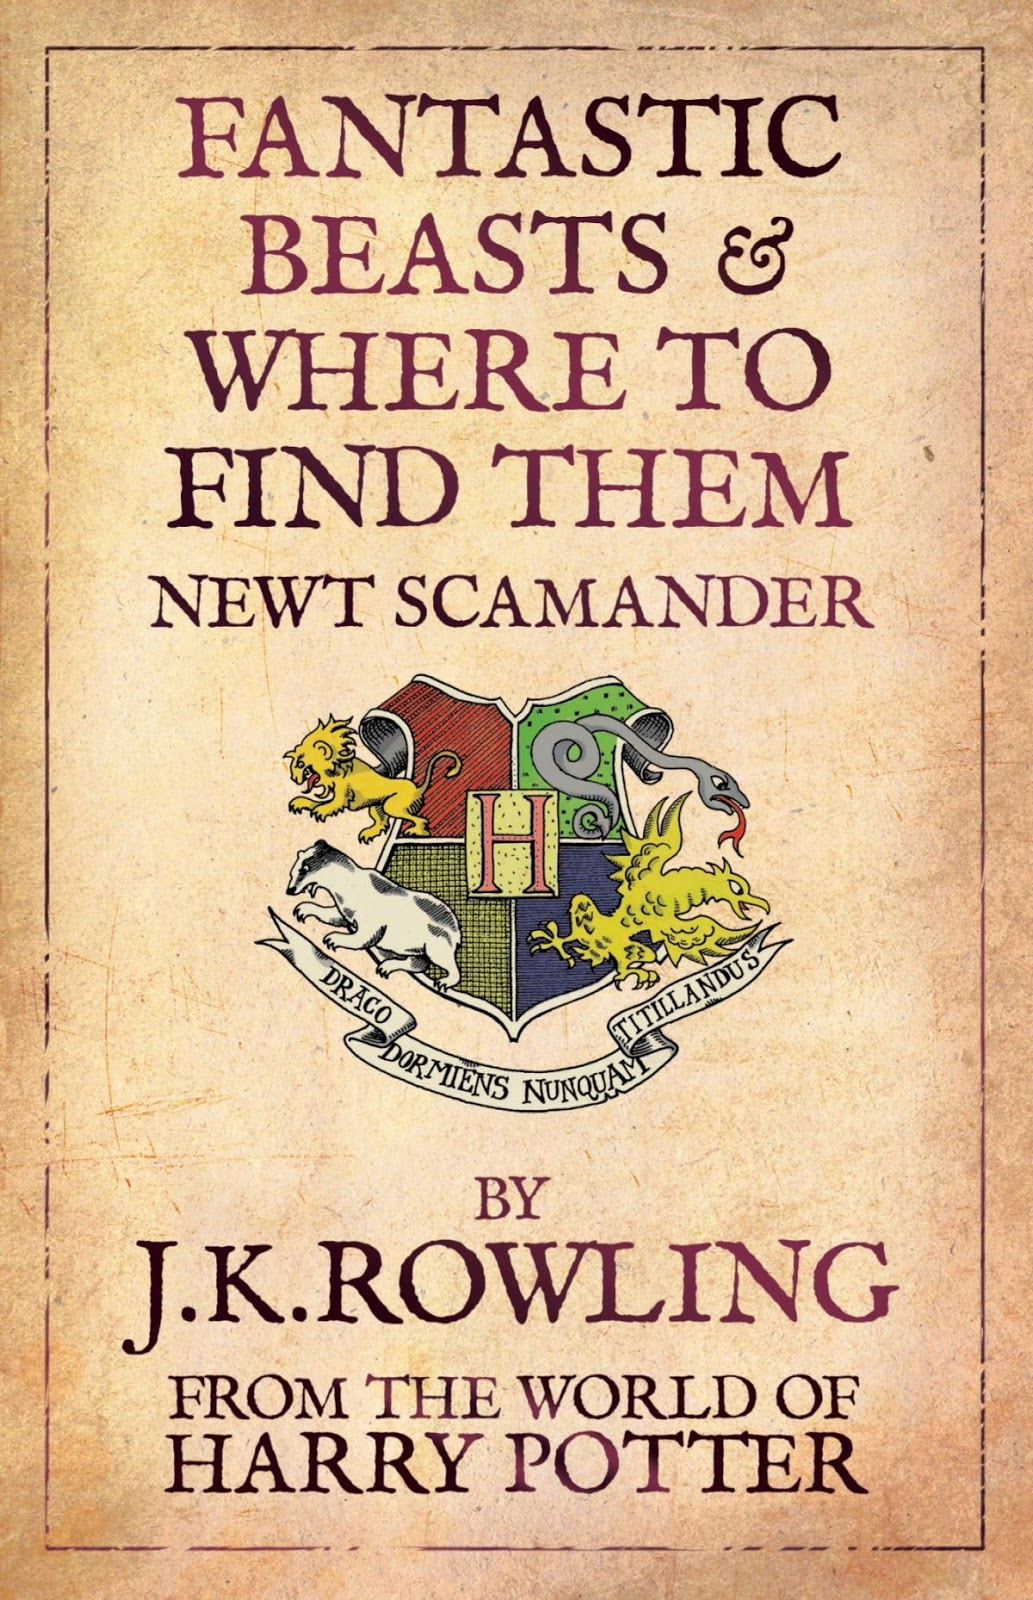 Portada de Fantastic Beasts and Where to Find Them de J.K. Rowling JK Rowling, autora de los libros de Harry Potter, escribirá la nueva saga de cintas de Warner Bros, sobre Newt Scamander en Fantastic Beasts and where to Find Them. Fantastic Beasts and where to Find Them llegará en 2016 aun sin un director o elenco anunciado